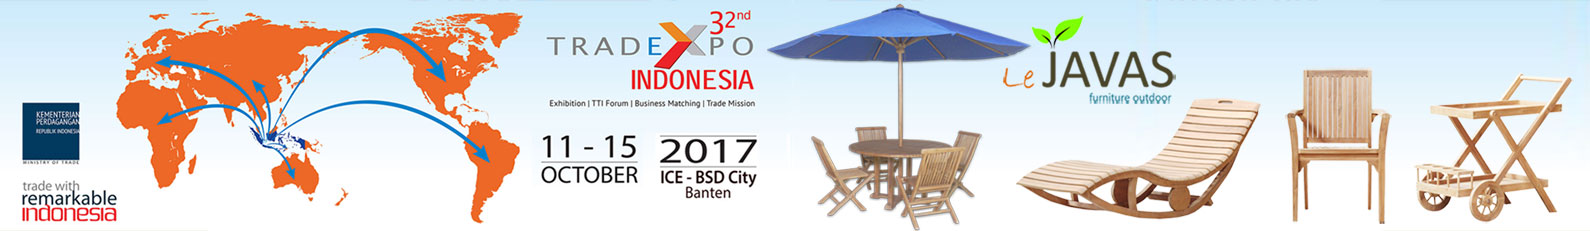 Trade Expo Indonesia 11-15 Oct 2017